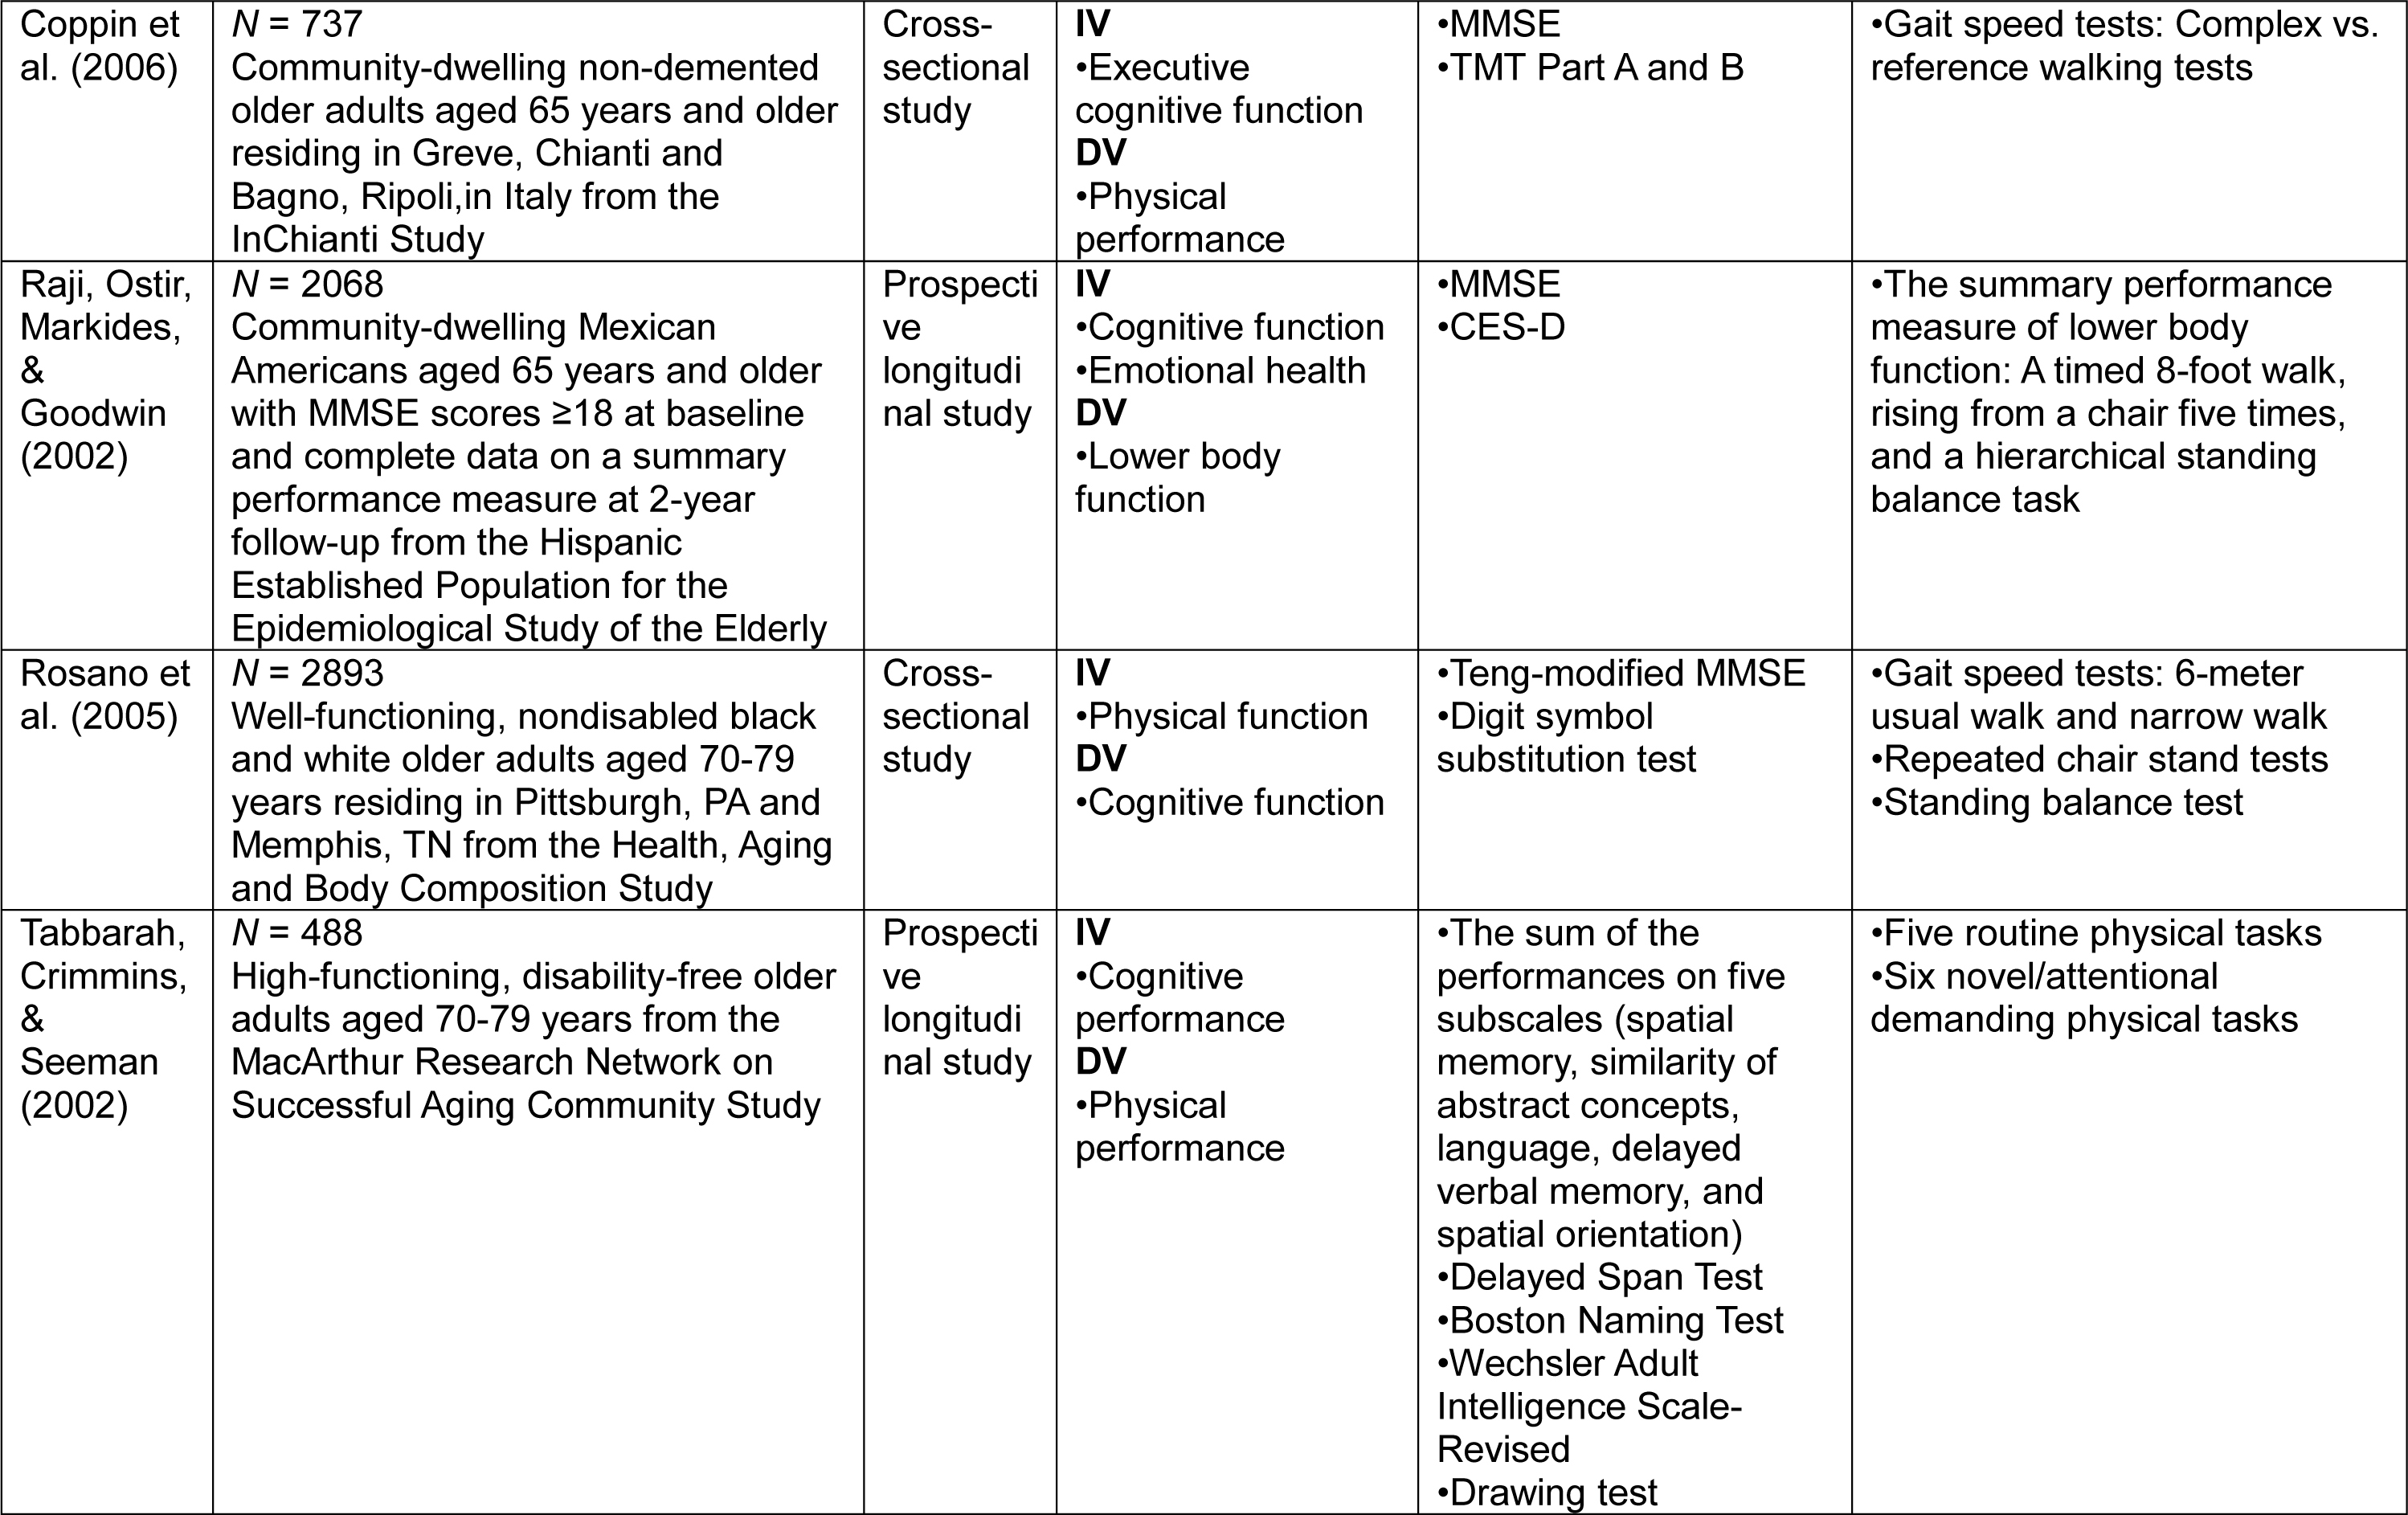 a literature review older adults' pain Methods: this mixed methods study, based on a modified delphi approach, included three distinct components: (1) a qualitative component using focus groups with key informants or experts in the field of pain management in older adults (n = 17), (2) a scoping review of the literature, and (3) a survey of ranked responses.